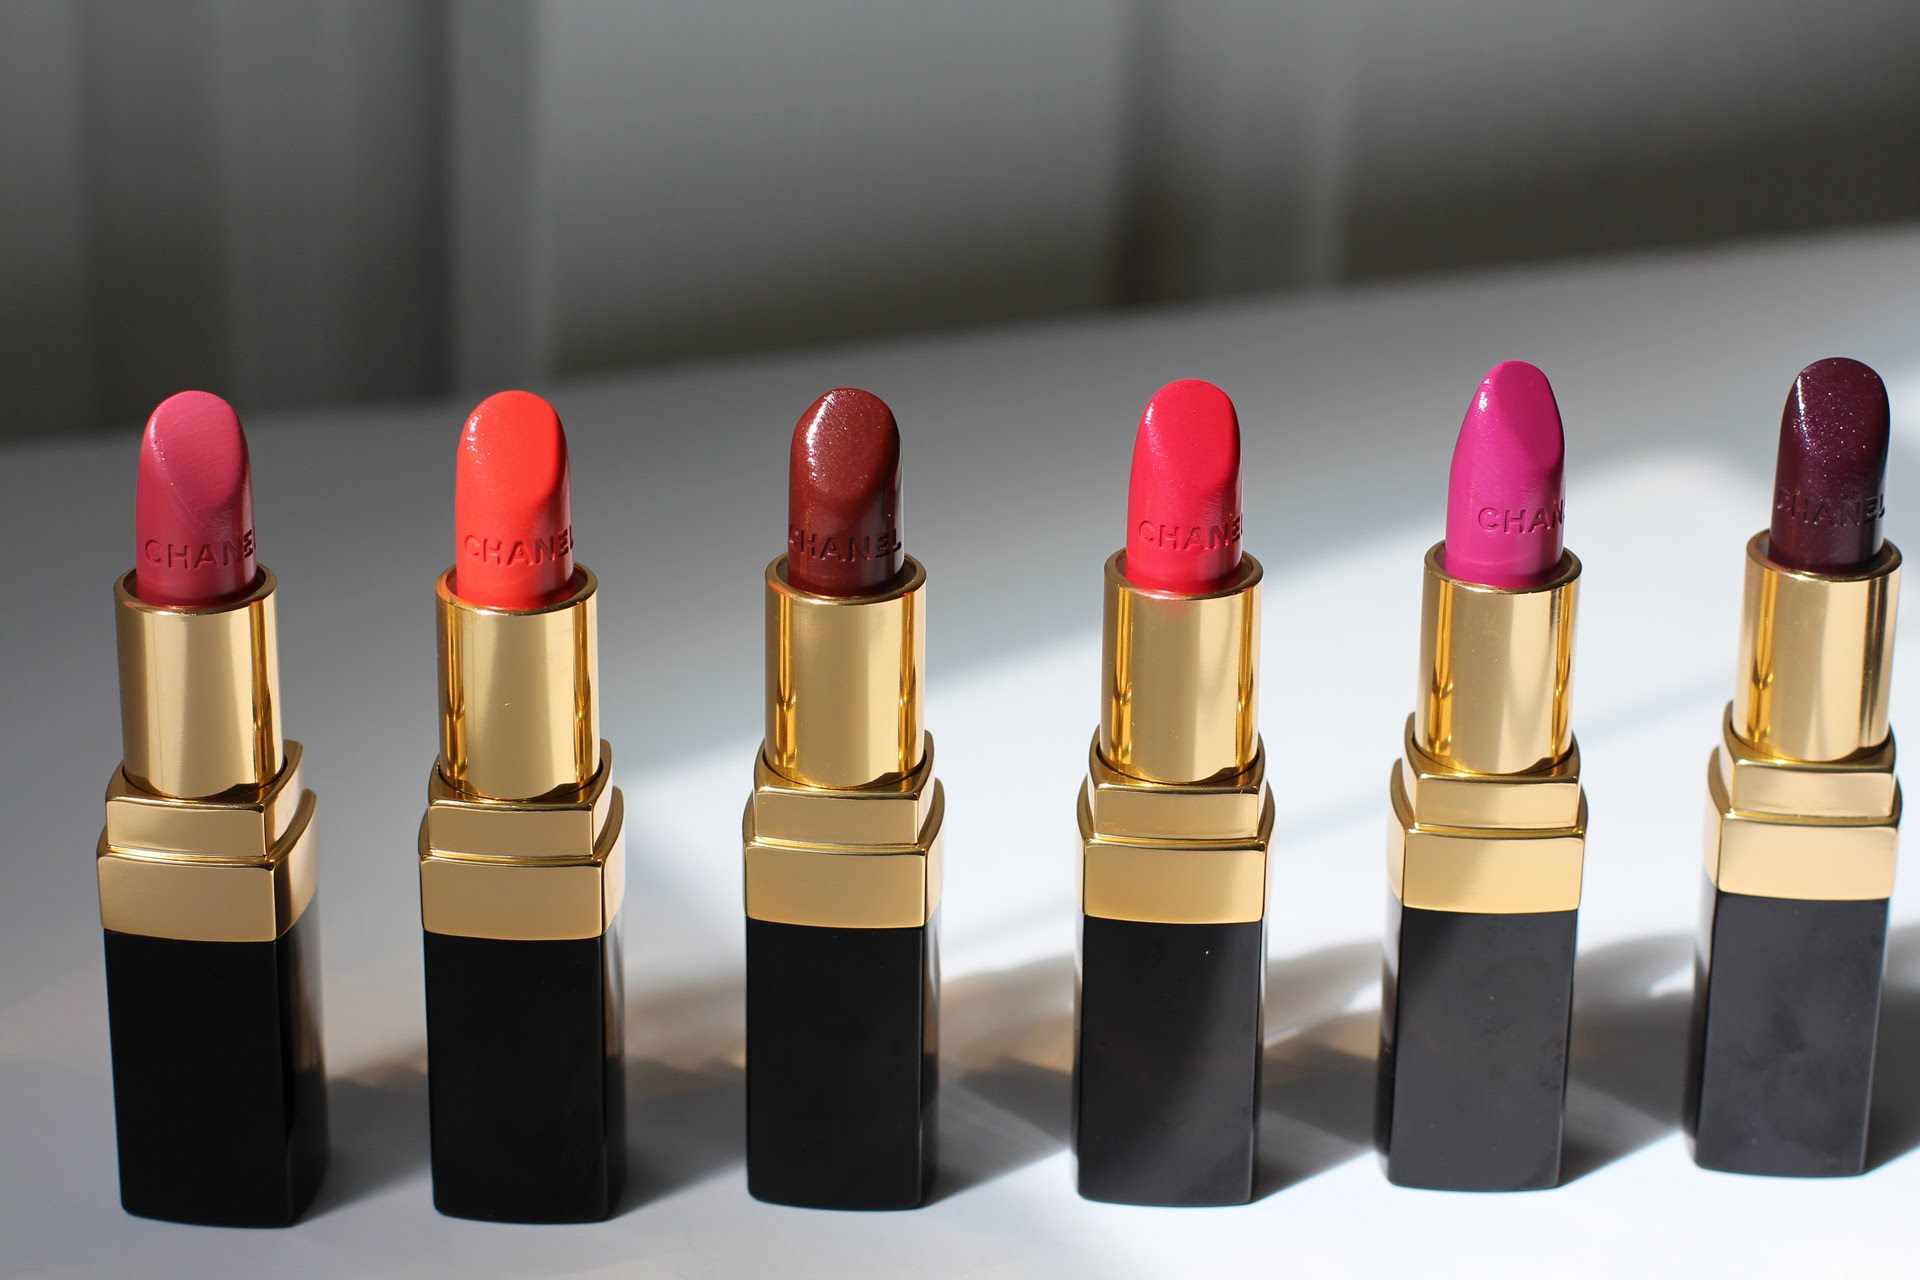 Beauty marker chanel rouge coco lipsticks review and swatches - Chanel Top 10 Lipstick Brands Of All Time